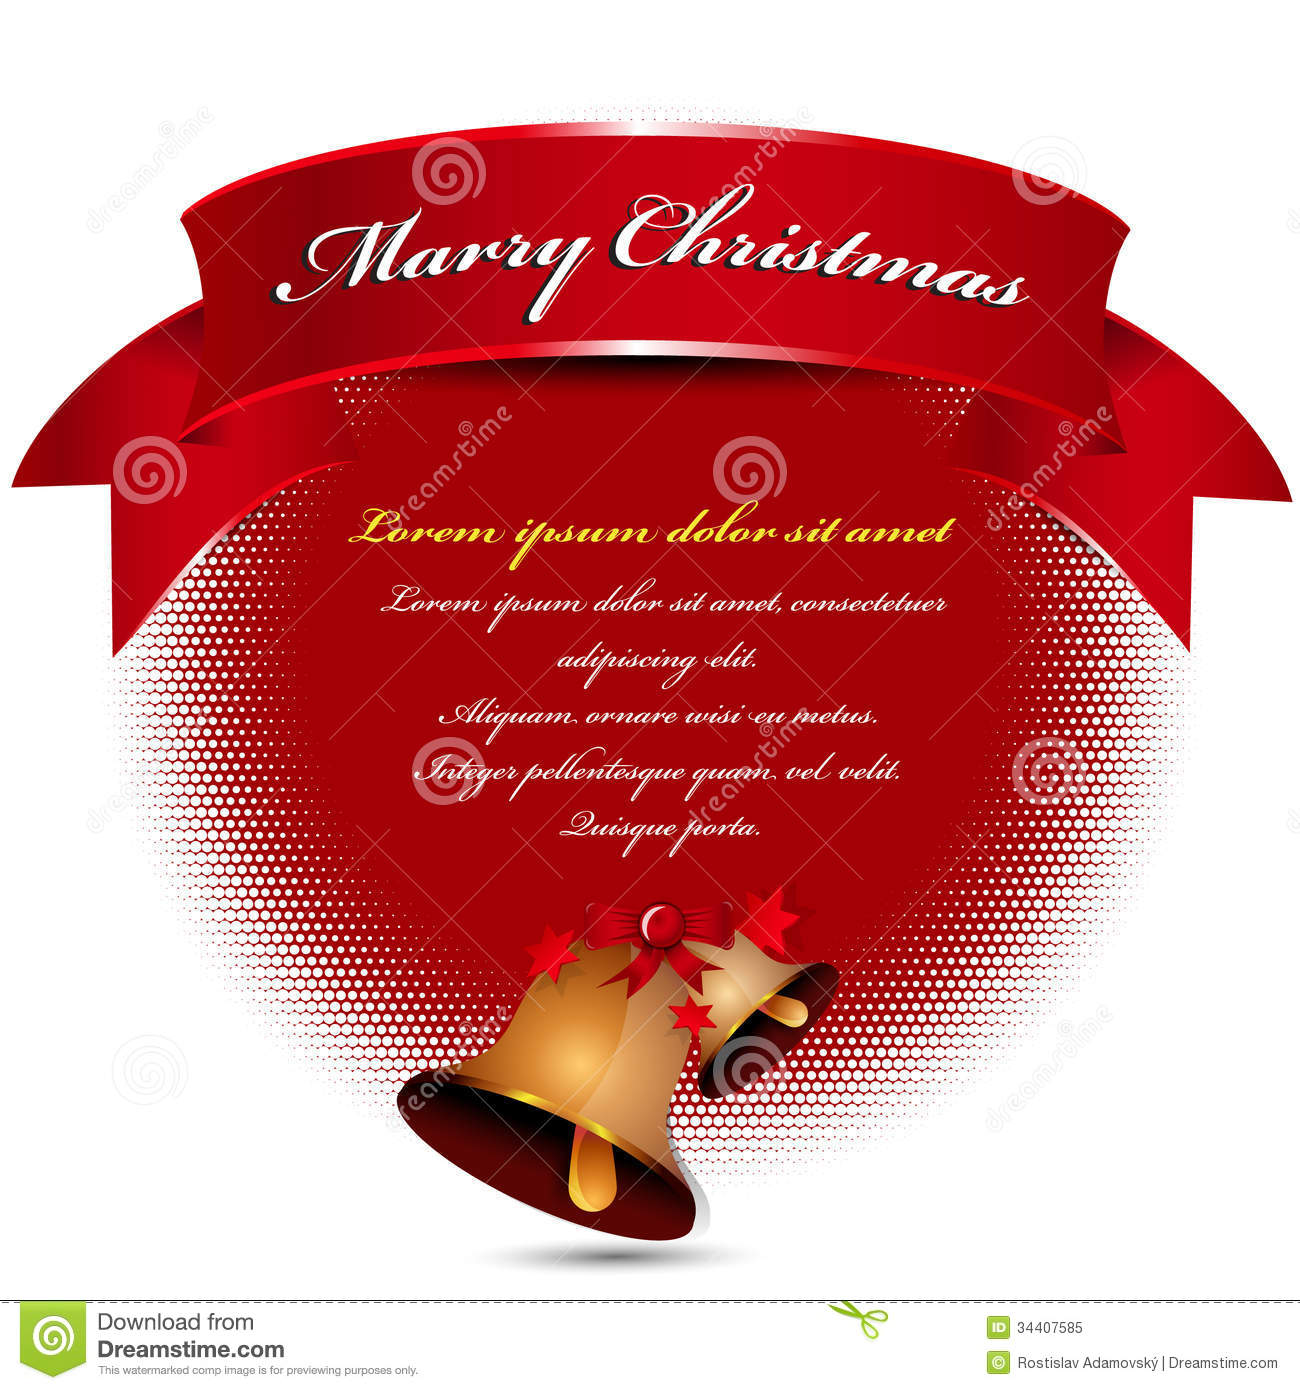 Simple Abstract Vector Christmas Background Royalty Free Stock Photo - Image: 34407585